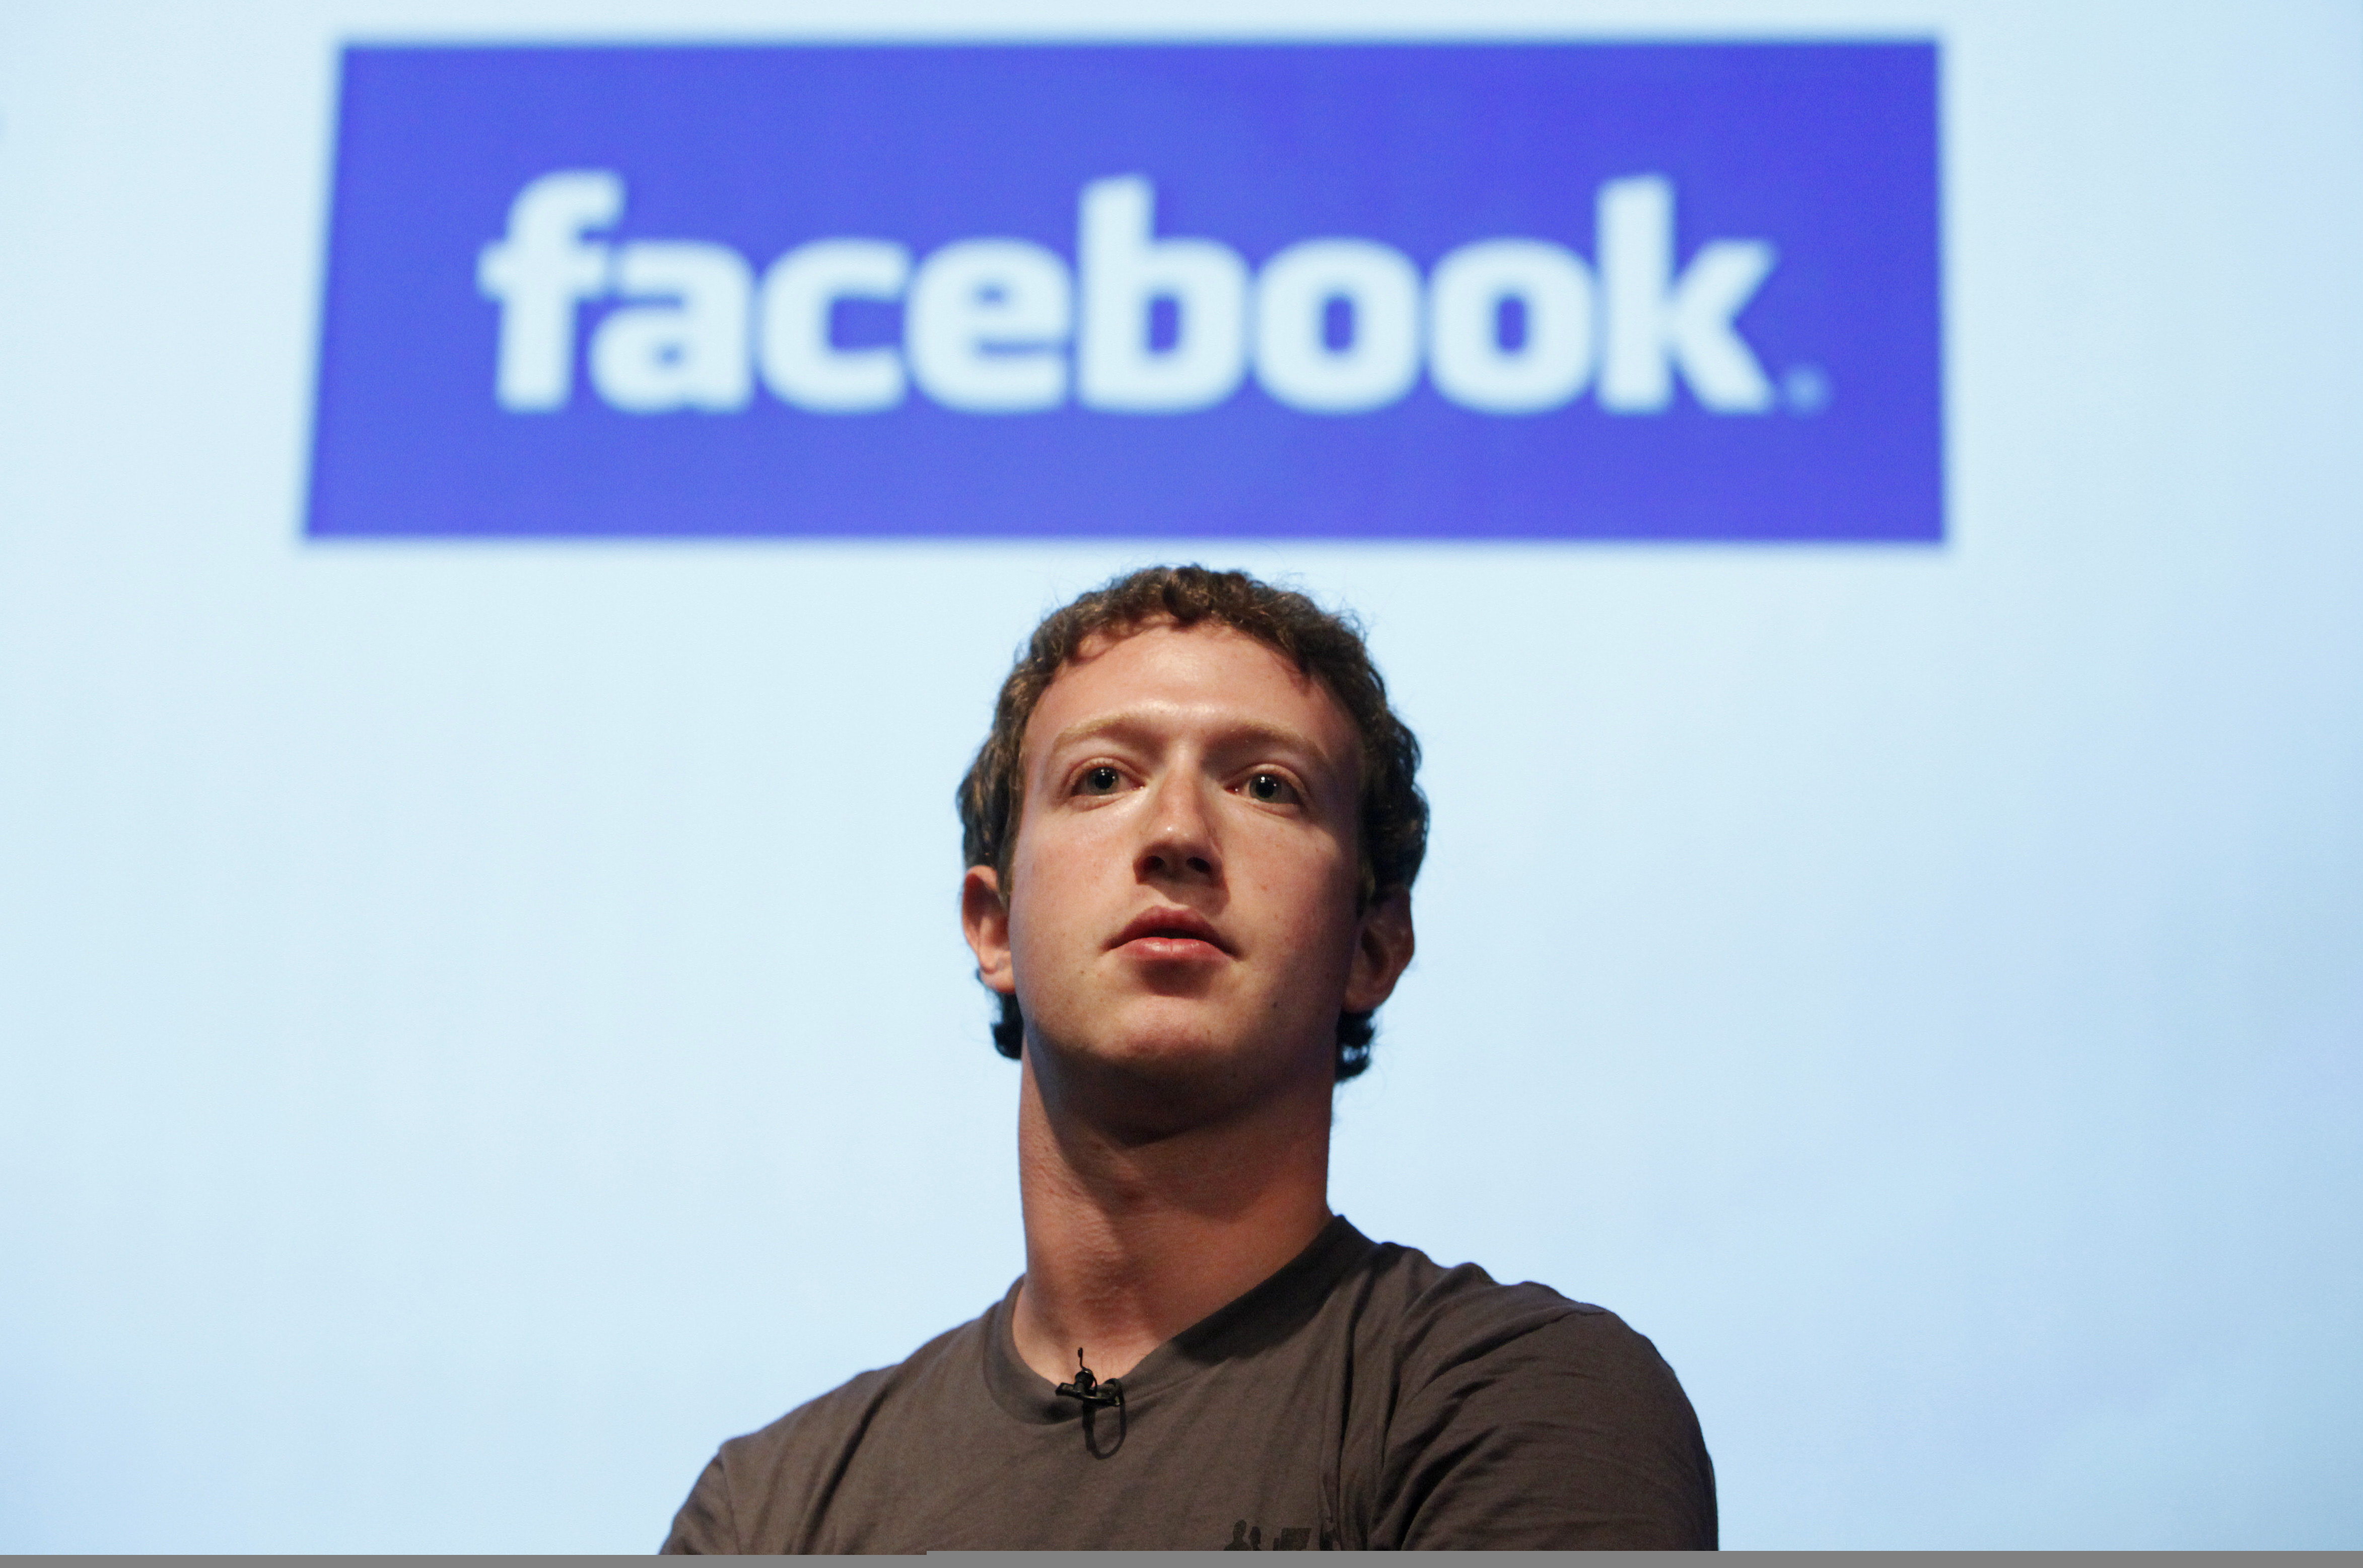 Mark-Zuckerberg-goes-after-Marc-Andreessen-for-India-comments